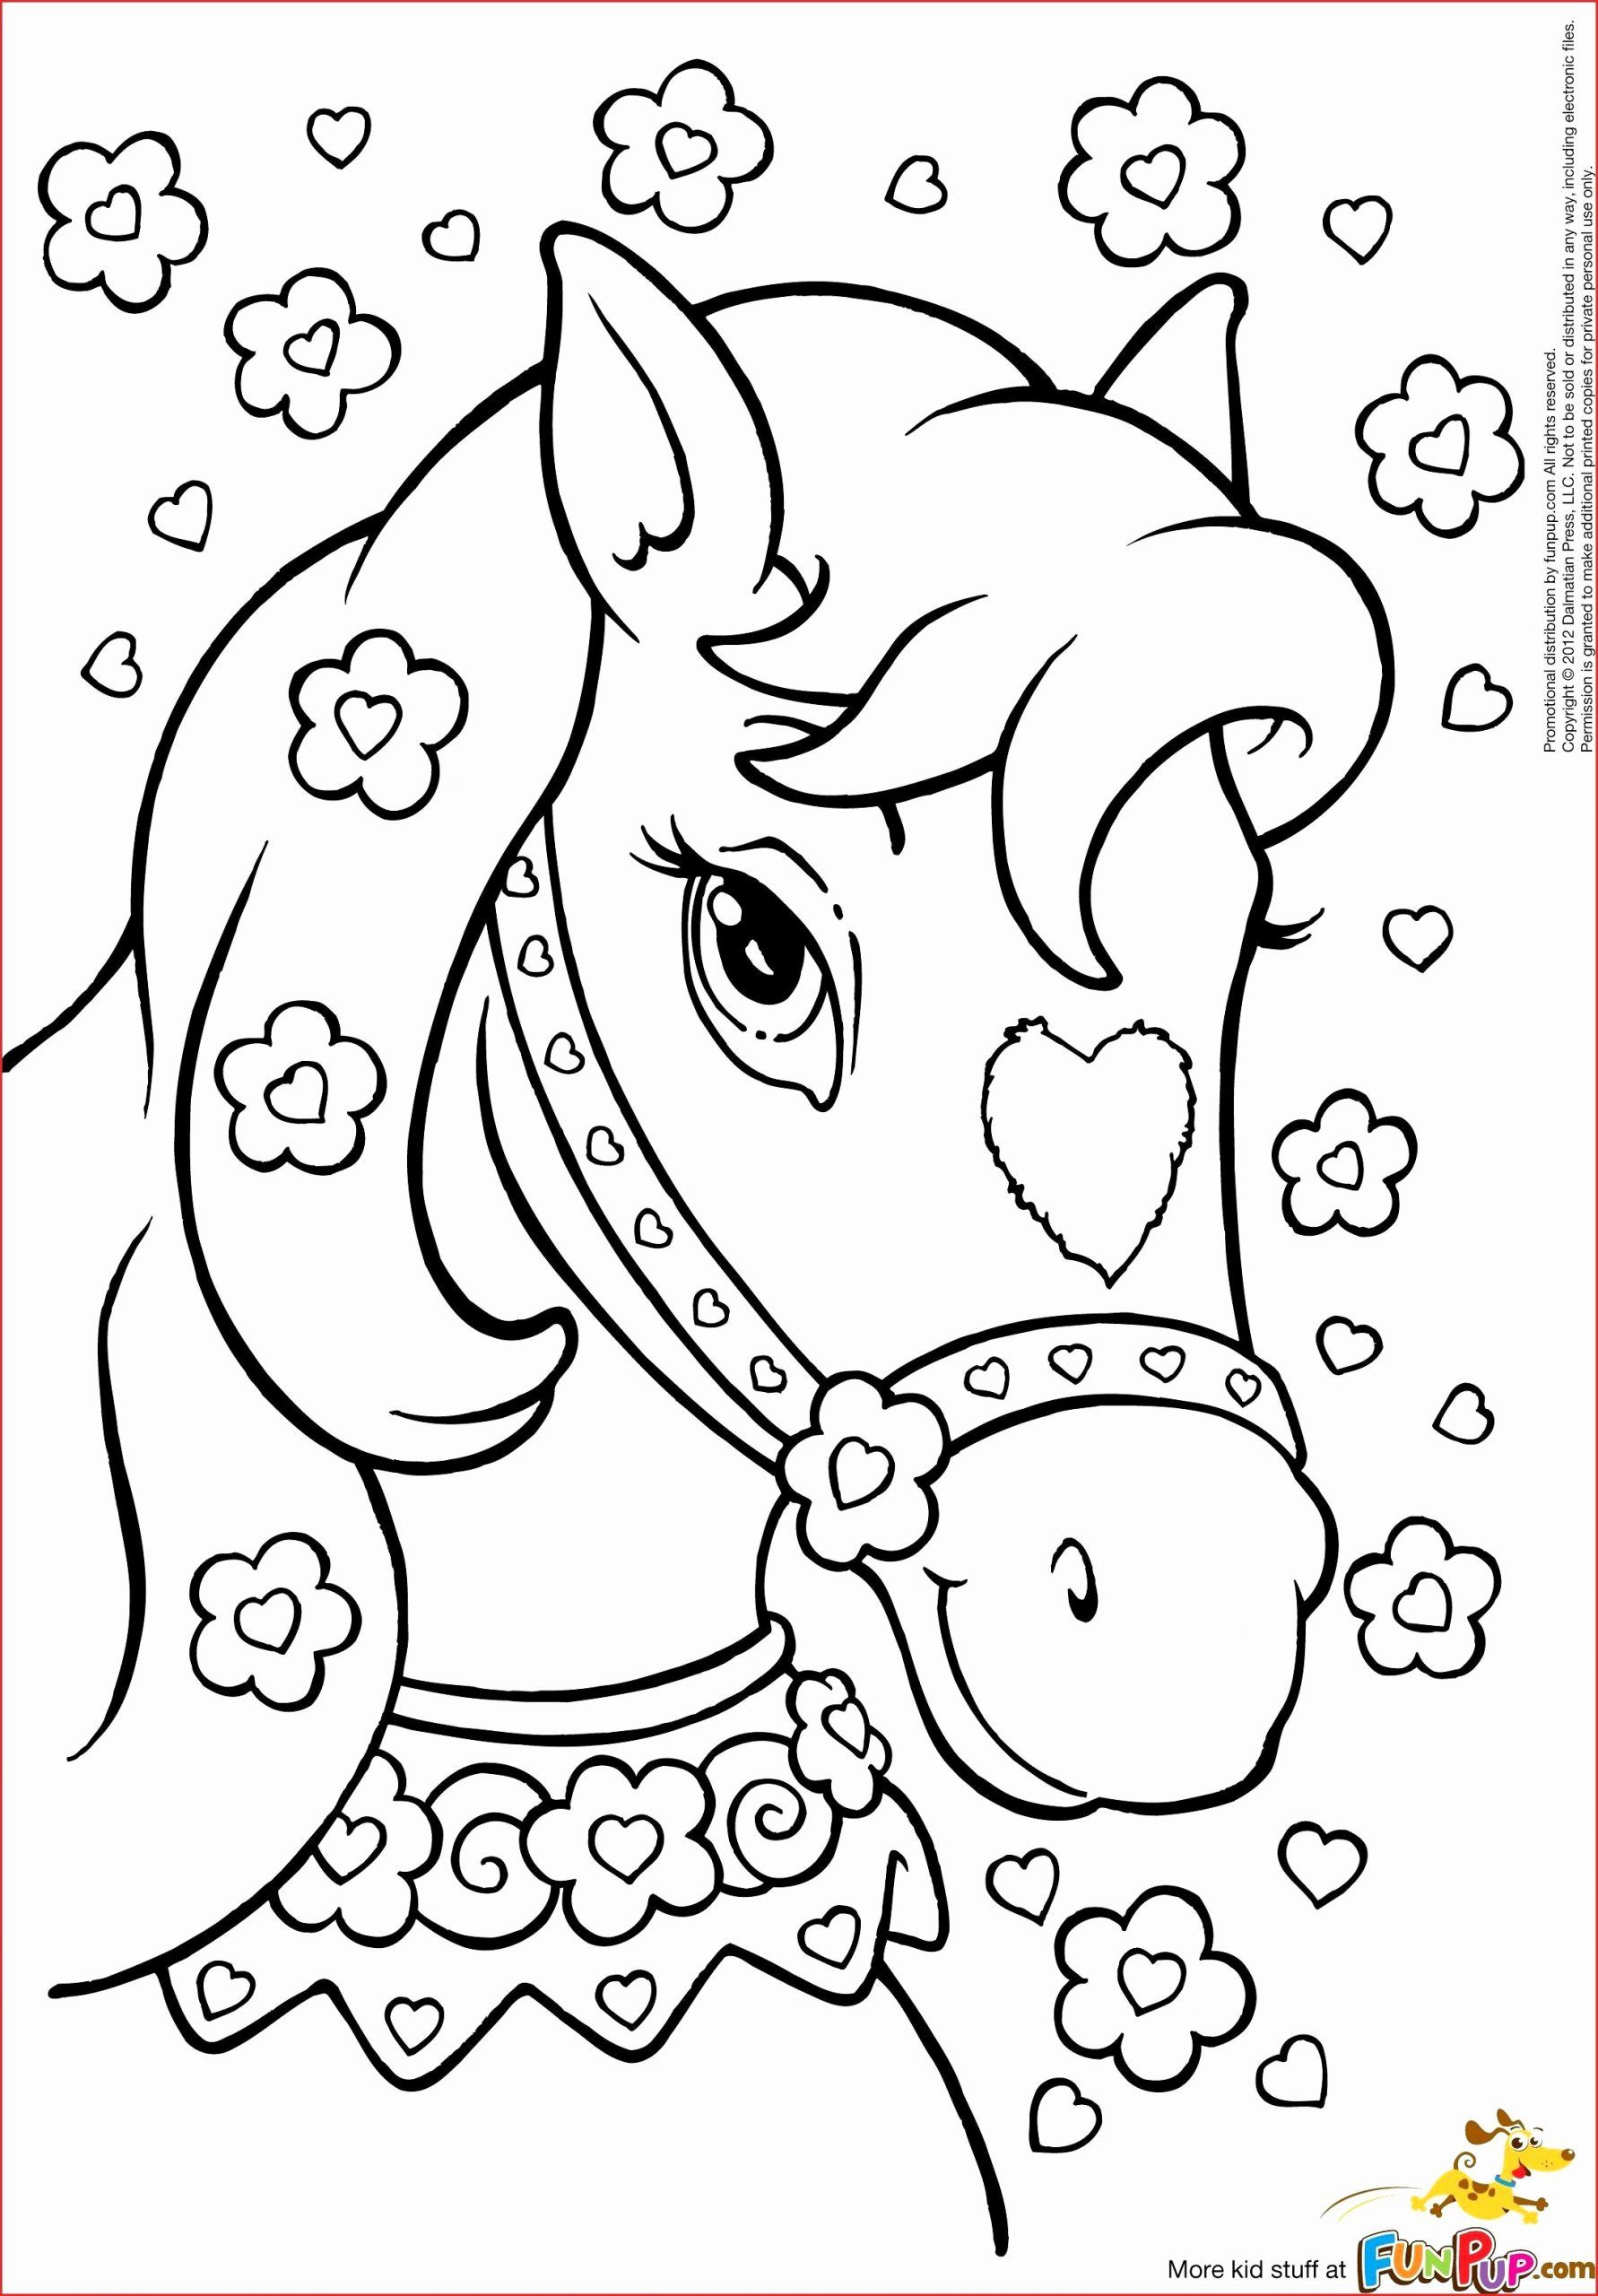 Coloring Book Animals Printable Elegant Coloring Book Animals To Print Luxury Horse In 2020 Unicorn Coloring Pages Disney Princess Coloring Pages Animal Coloring Pages